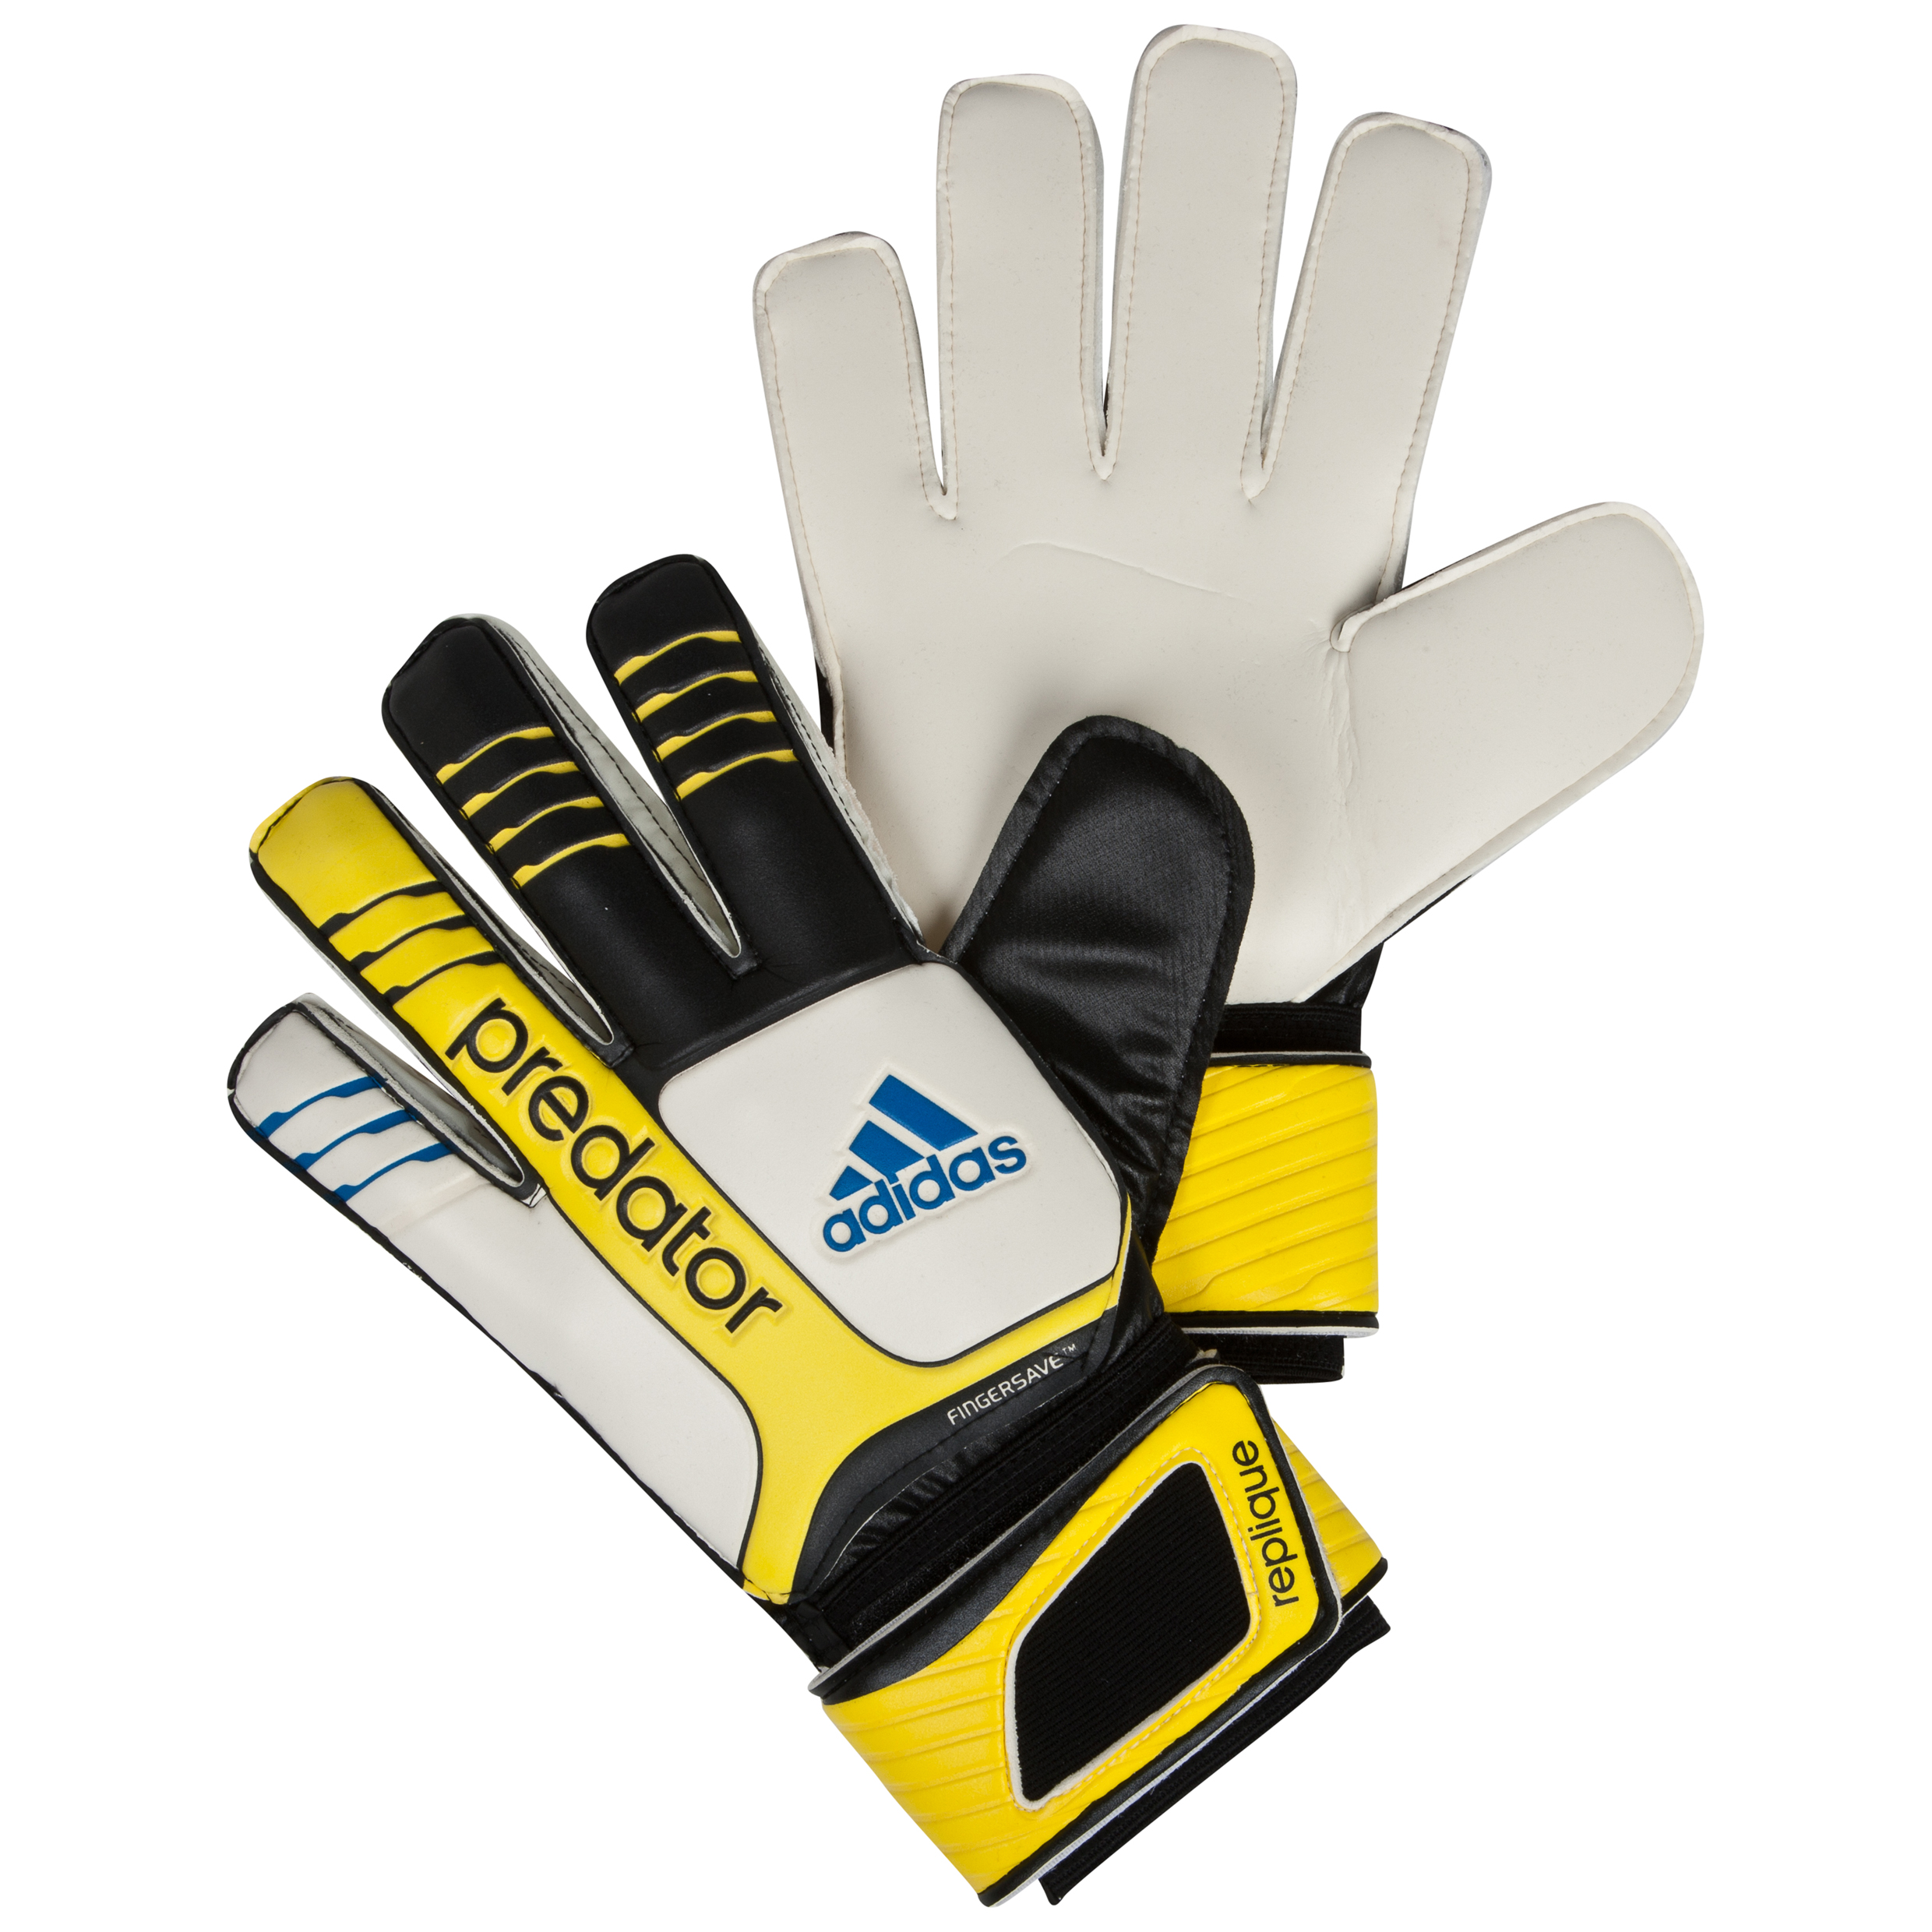 adidas Pred FS Replique Goalkeeper Gloves - Black/White/Vivid Yellow/Prime Blue